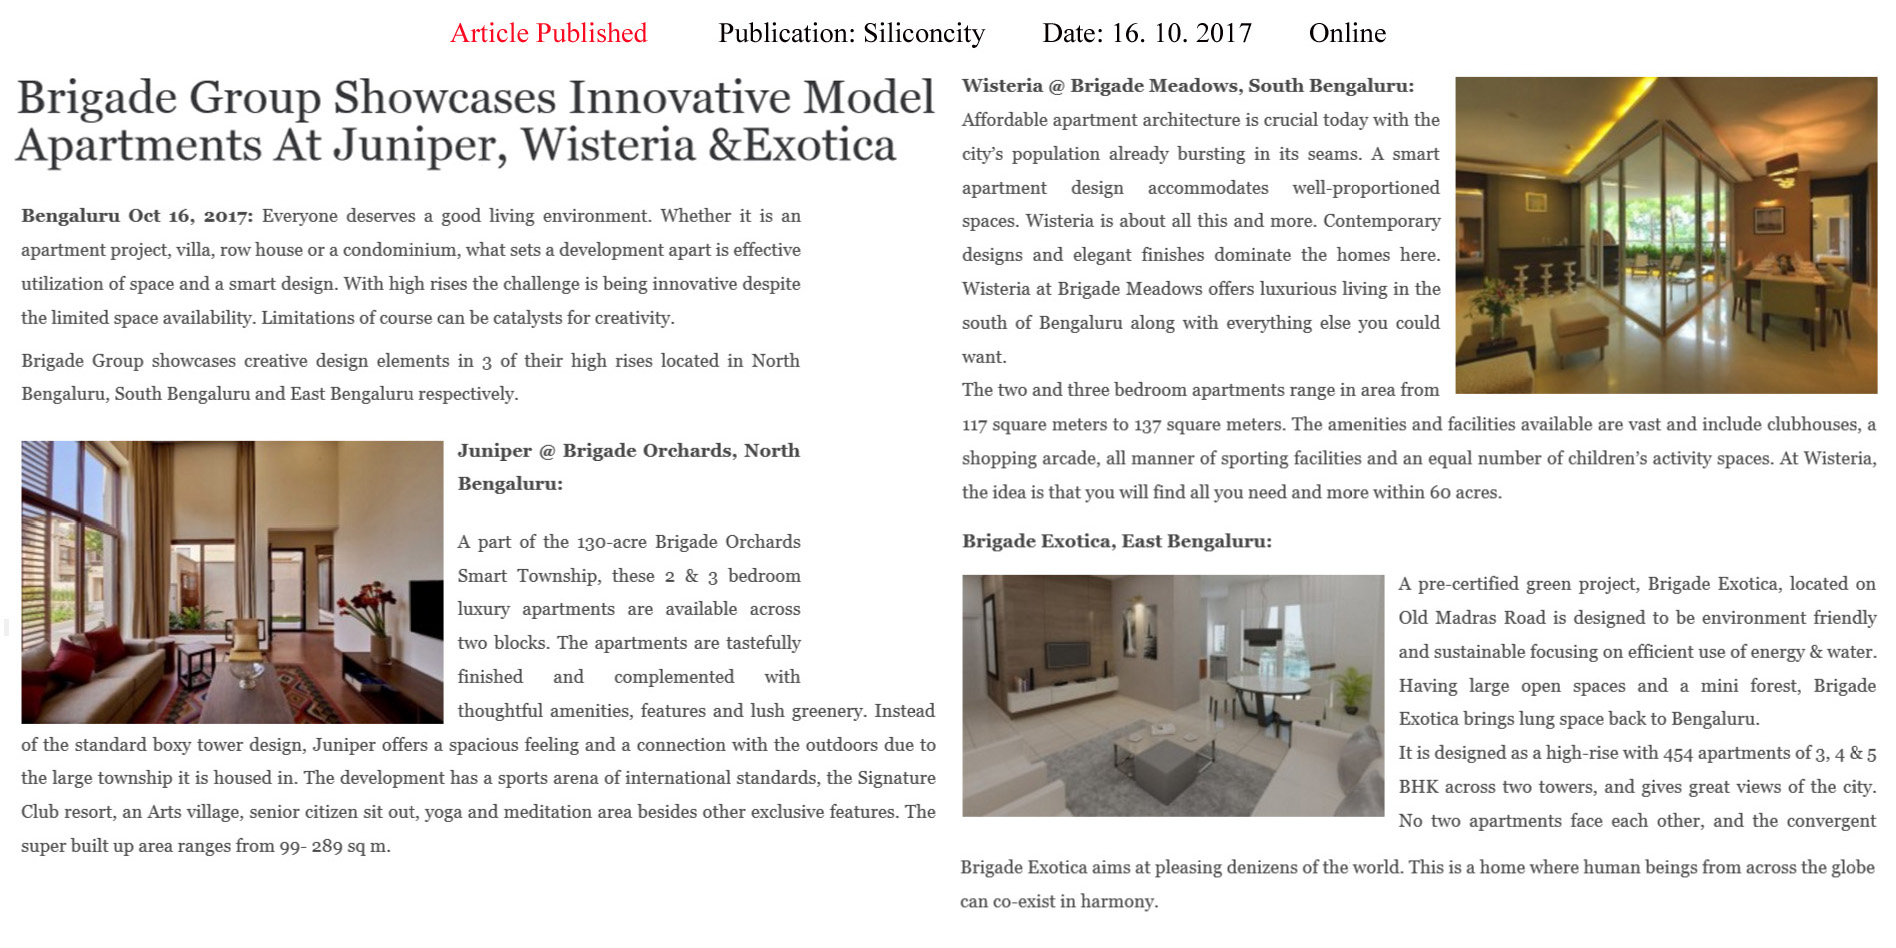 Brigade Group Showcases Innovative Model Apartments At Juniper, Wisteria & Exotica—Silicon City–Online